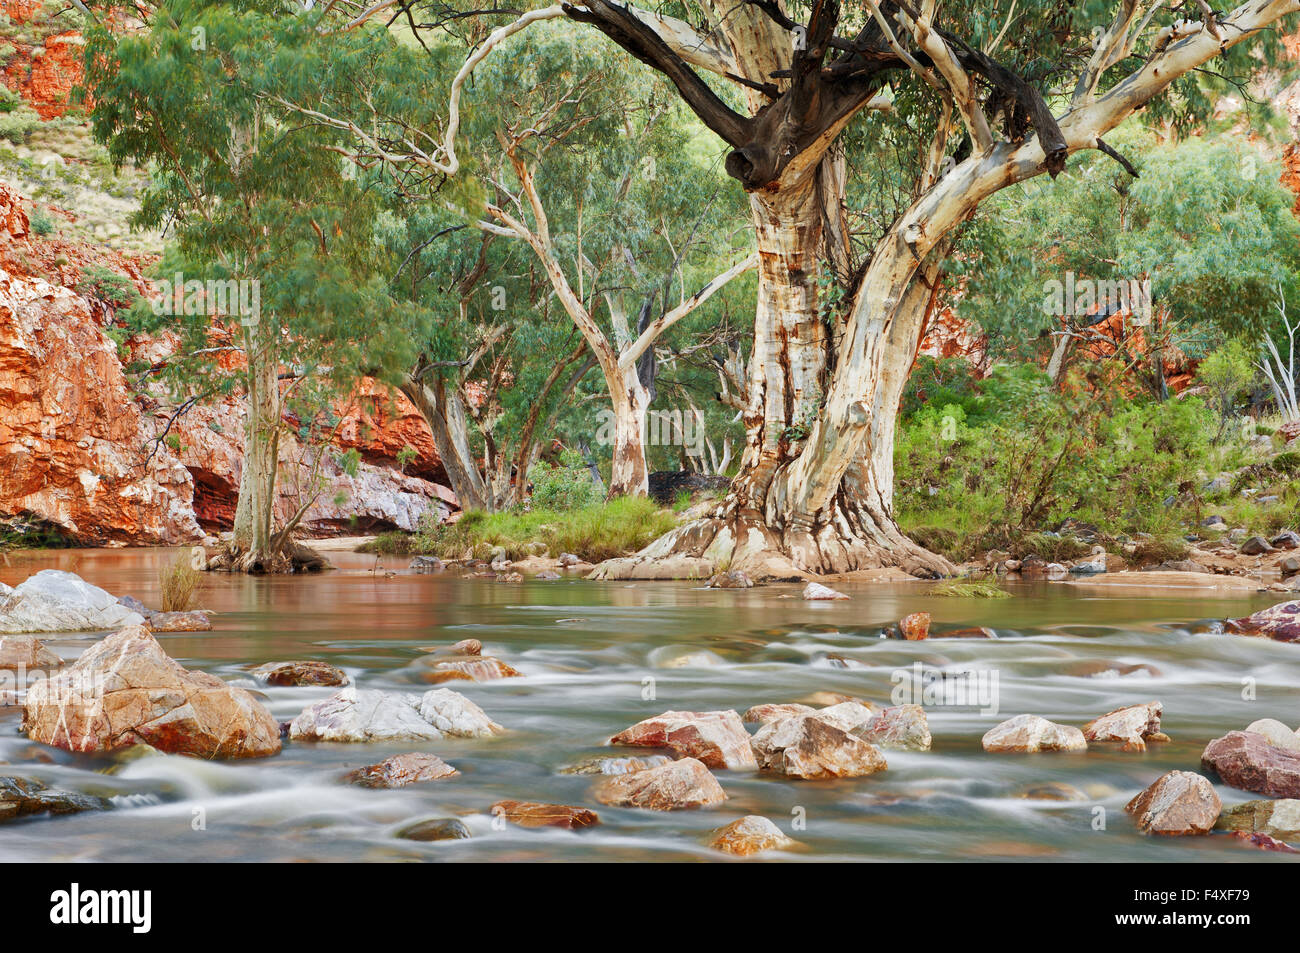 Ormiston Creek running after heavy rain in MacDonnell Ranges. - Stock Image